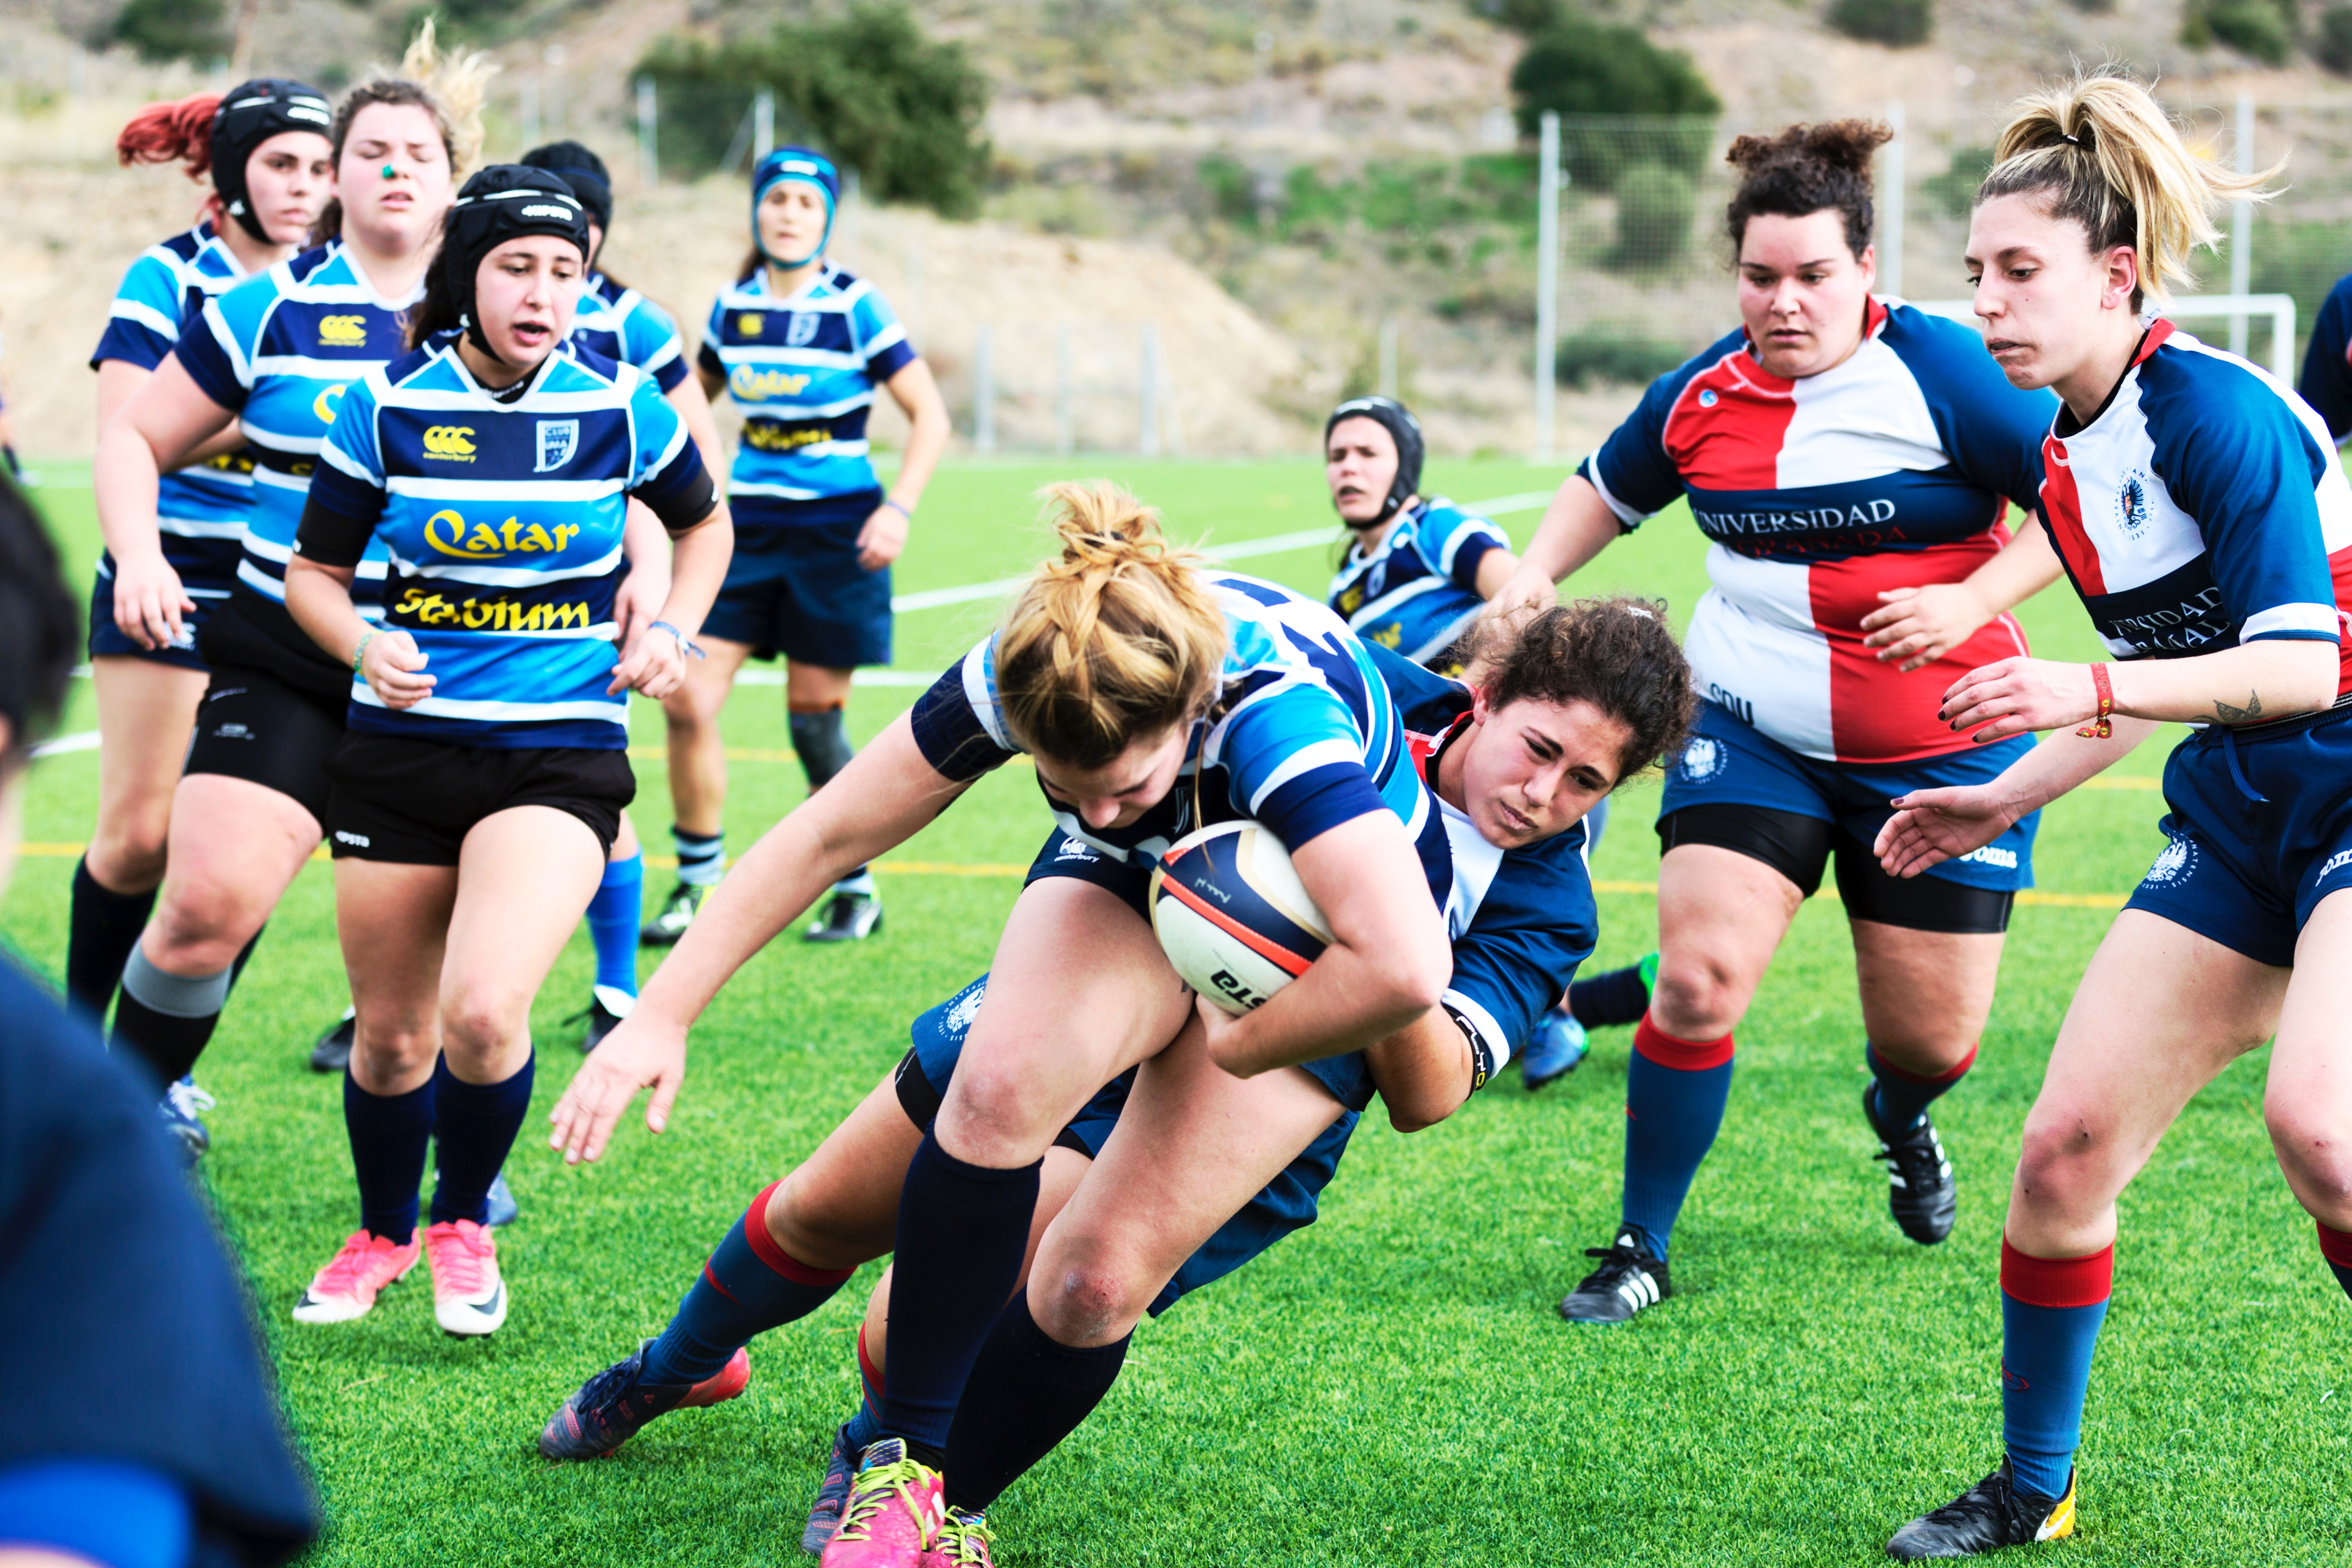 Women rugby players. One woman is tackling another player holding the ball. One team wears dark blue, white, and light blue striped shirts. The other team wears red, white, and navy shirts.